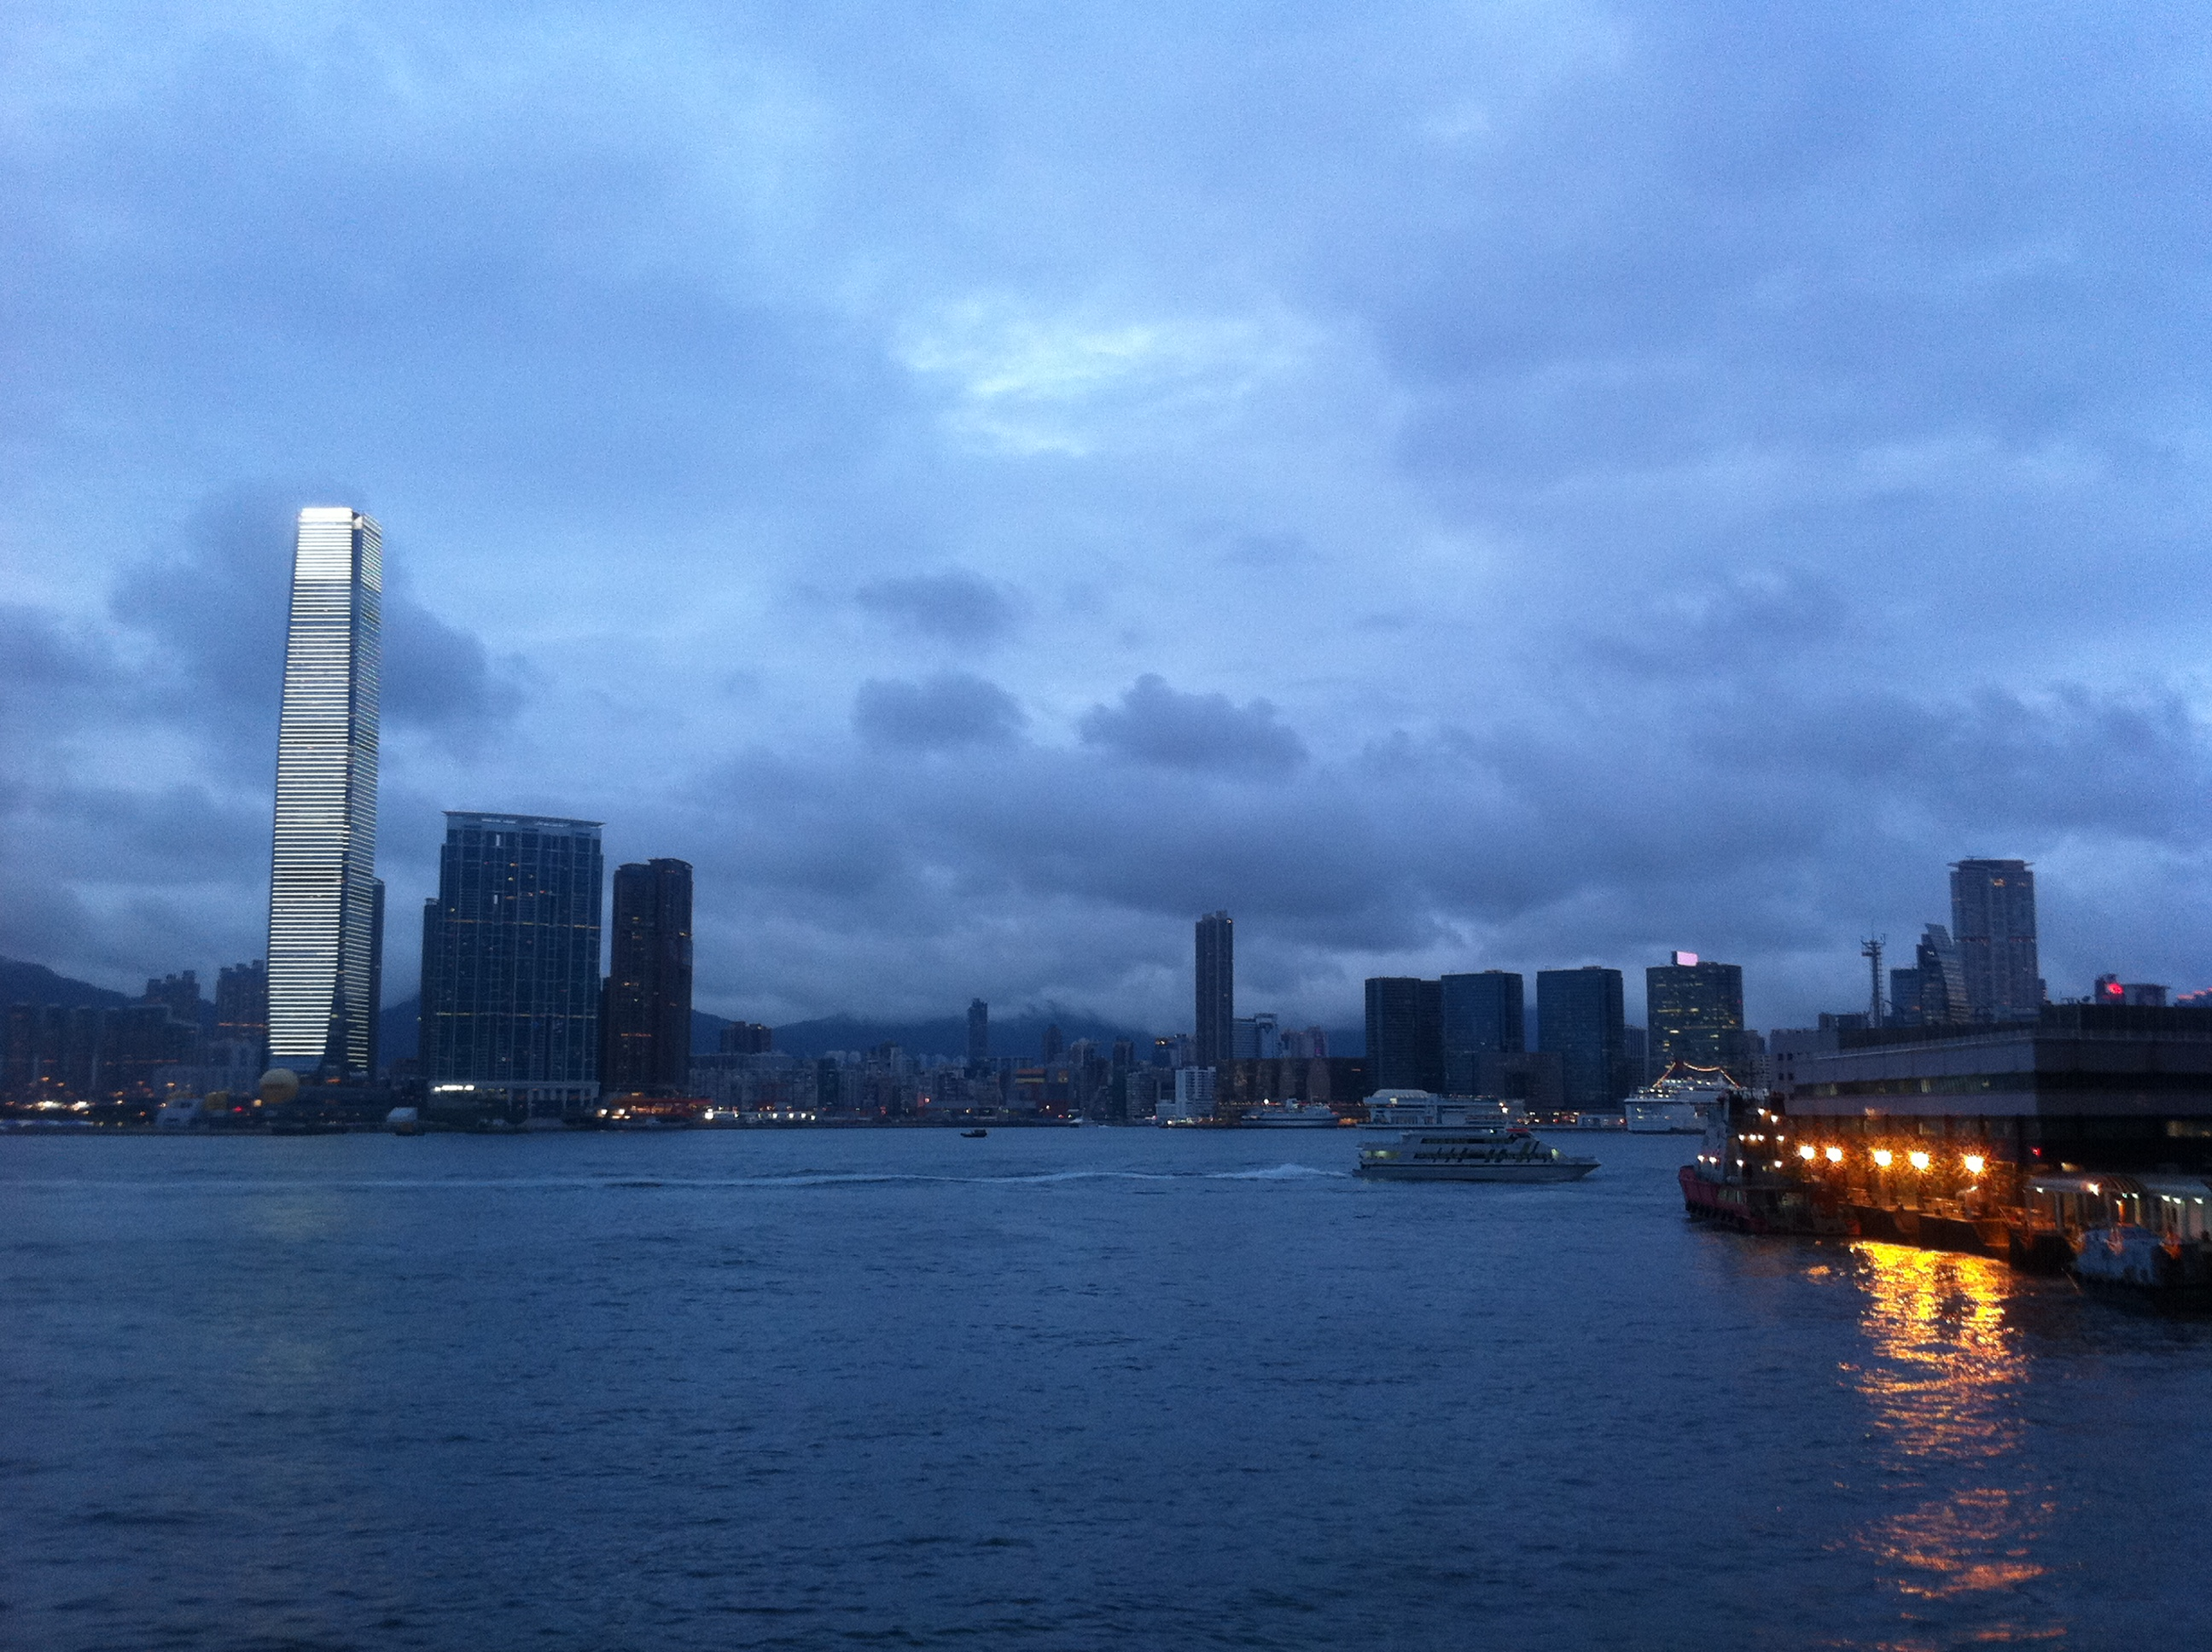 https://upload.wikimedia.org/wikipedia/commons/6/69/HK_Sheung_Wan_evening_port_seaview_Victoria_Harbour_Oct-2011.jpg